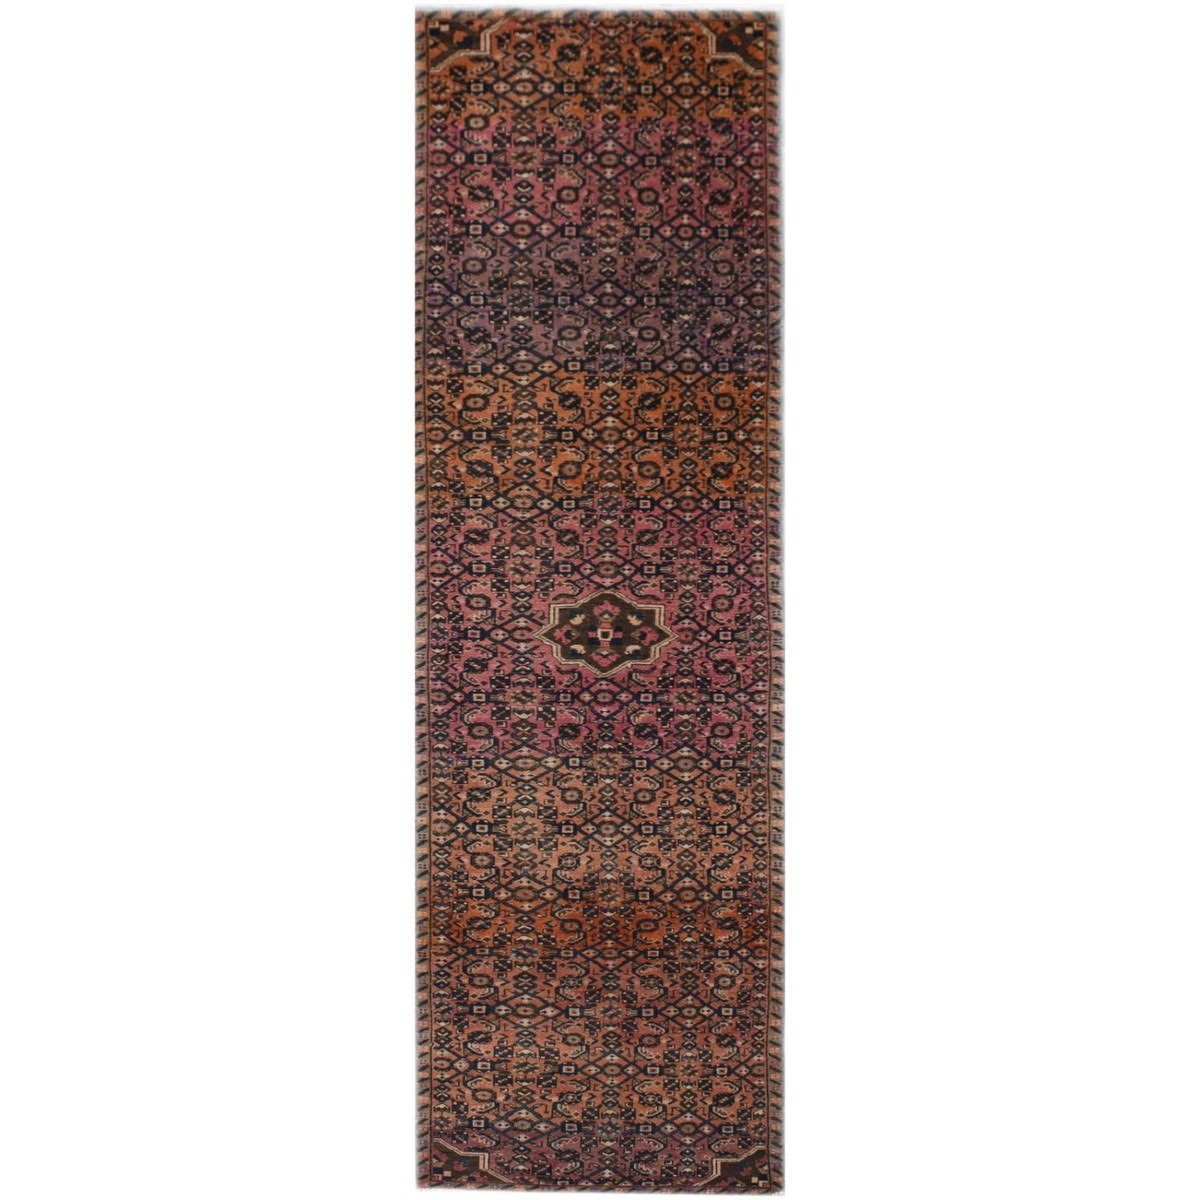 One of A Kind Hagan Hand Knotted Wool Persian Runner Rug, 389x93cm